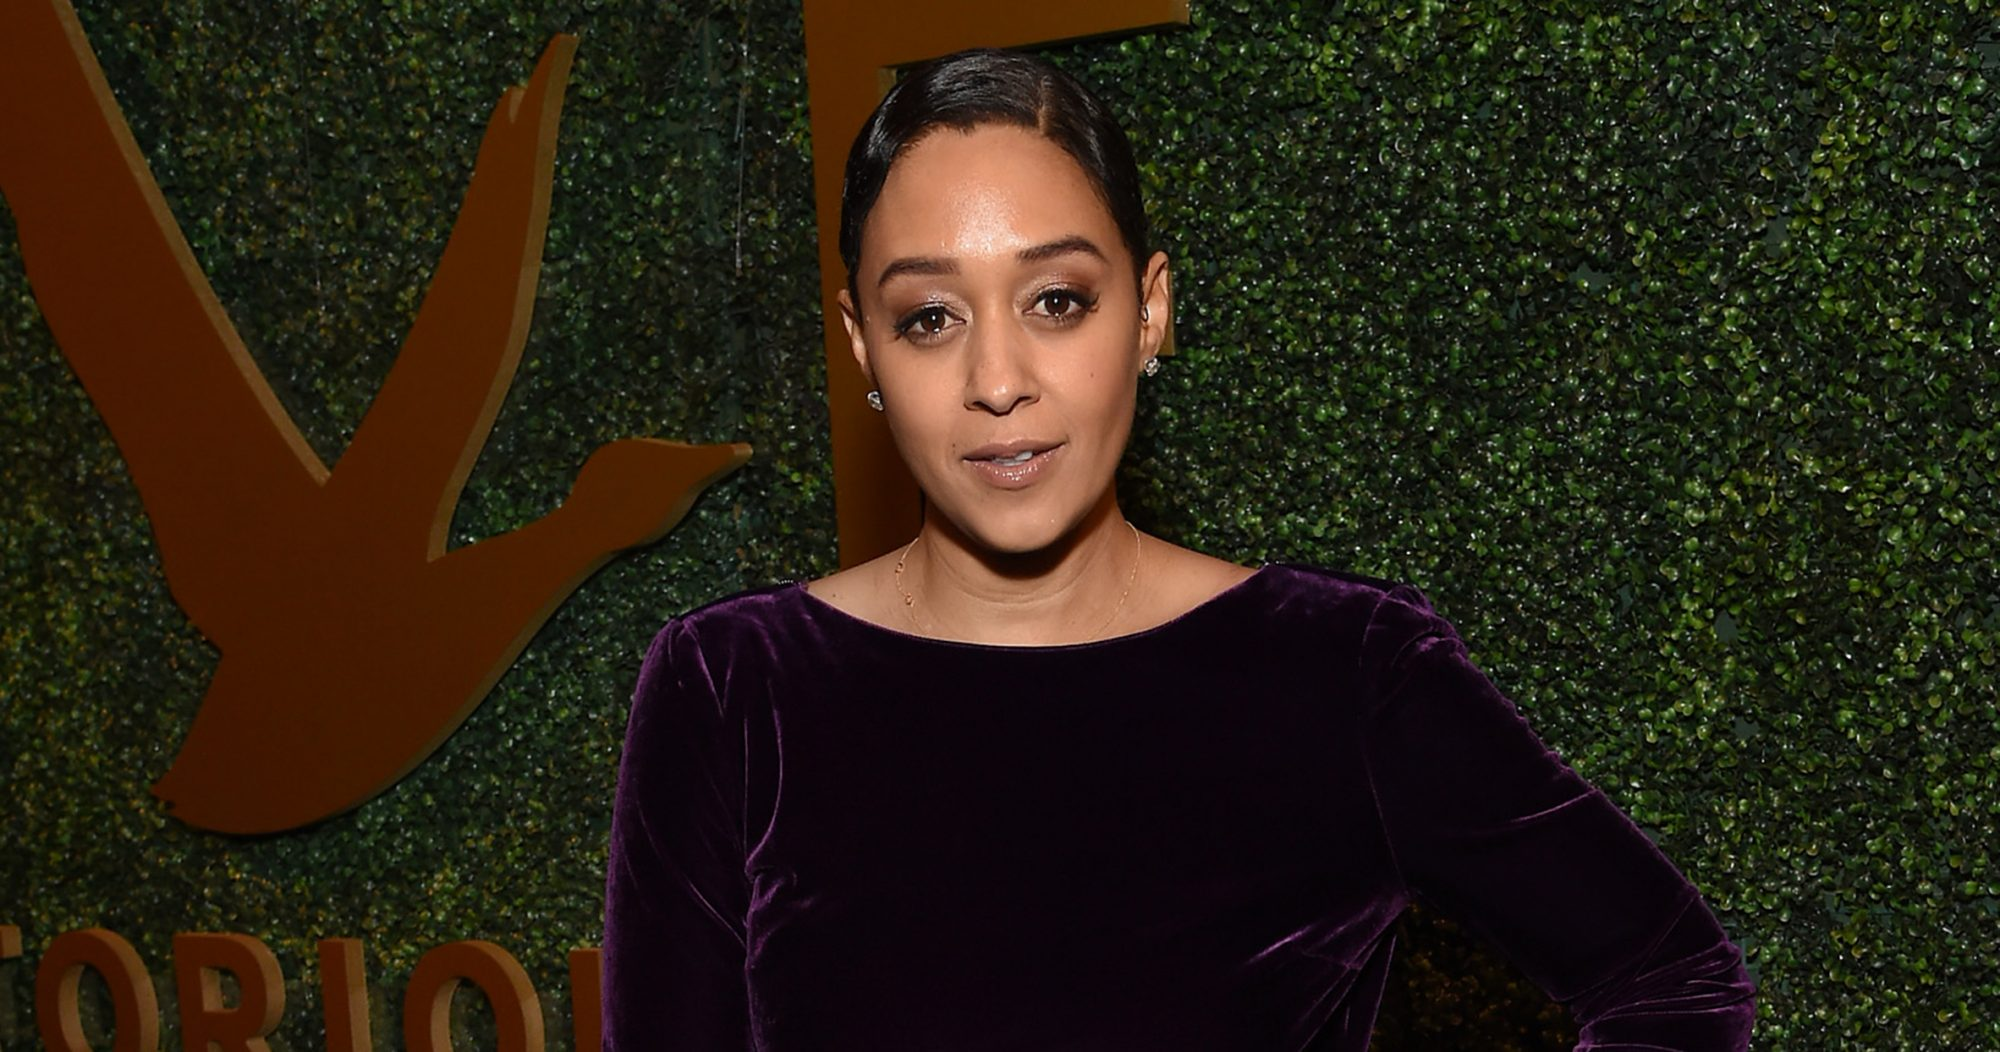 Tia Mowry Is Celebrating Her Stretch Marks and Excess Skin After Giving Birth